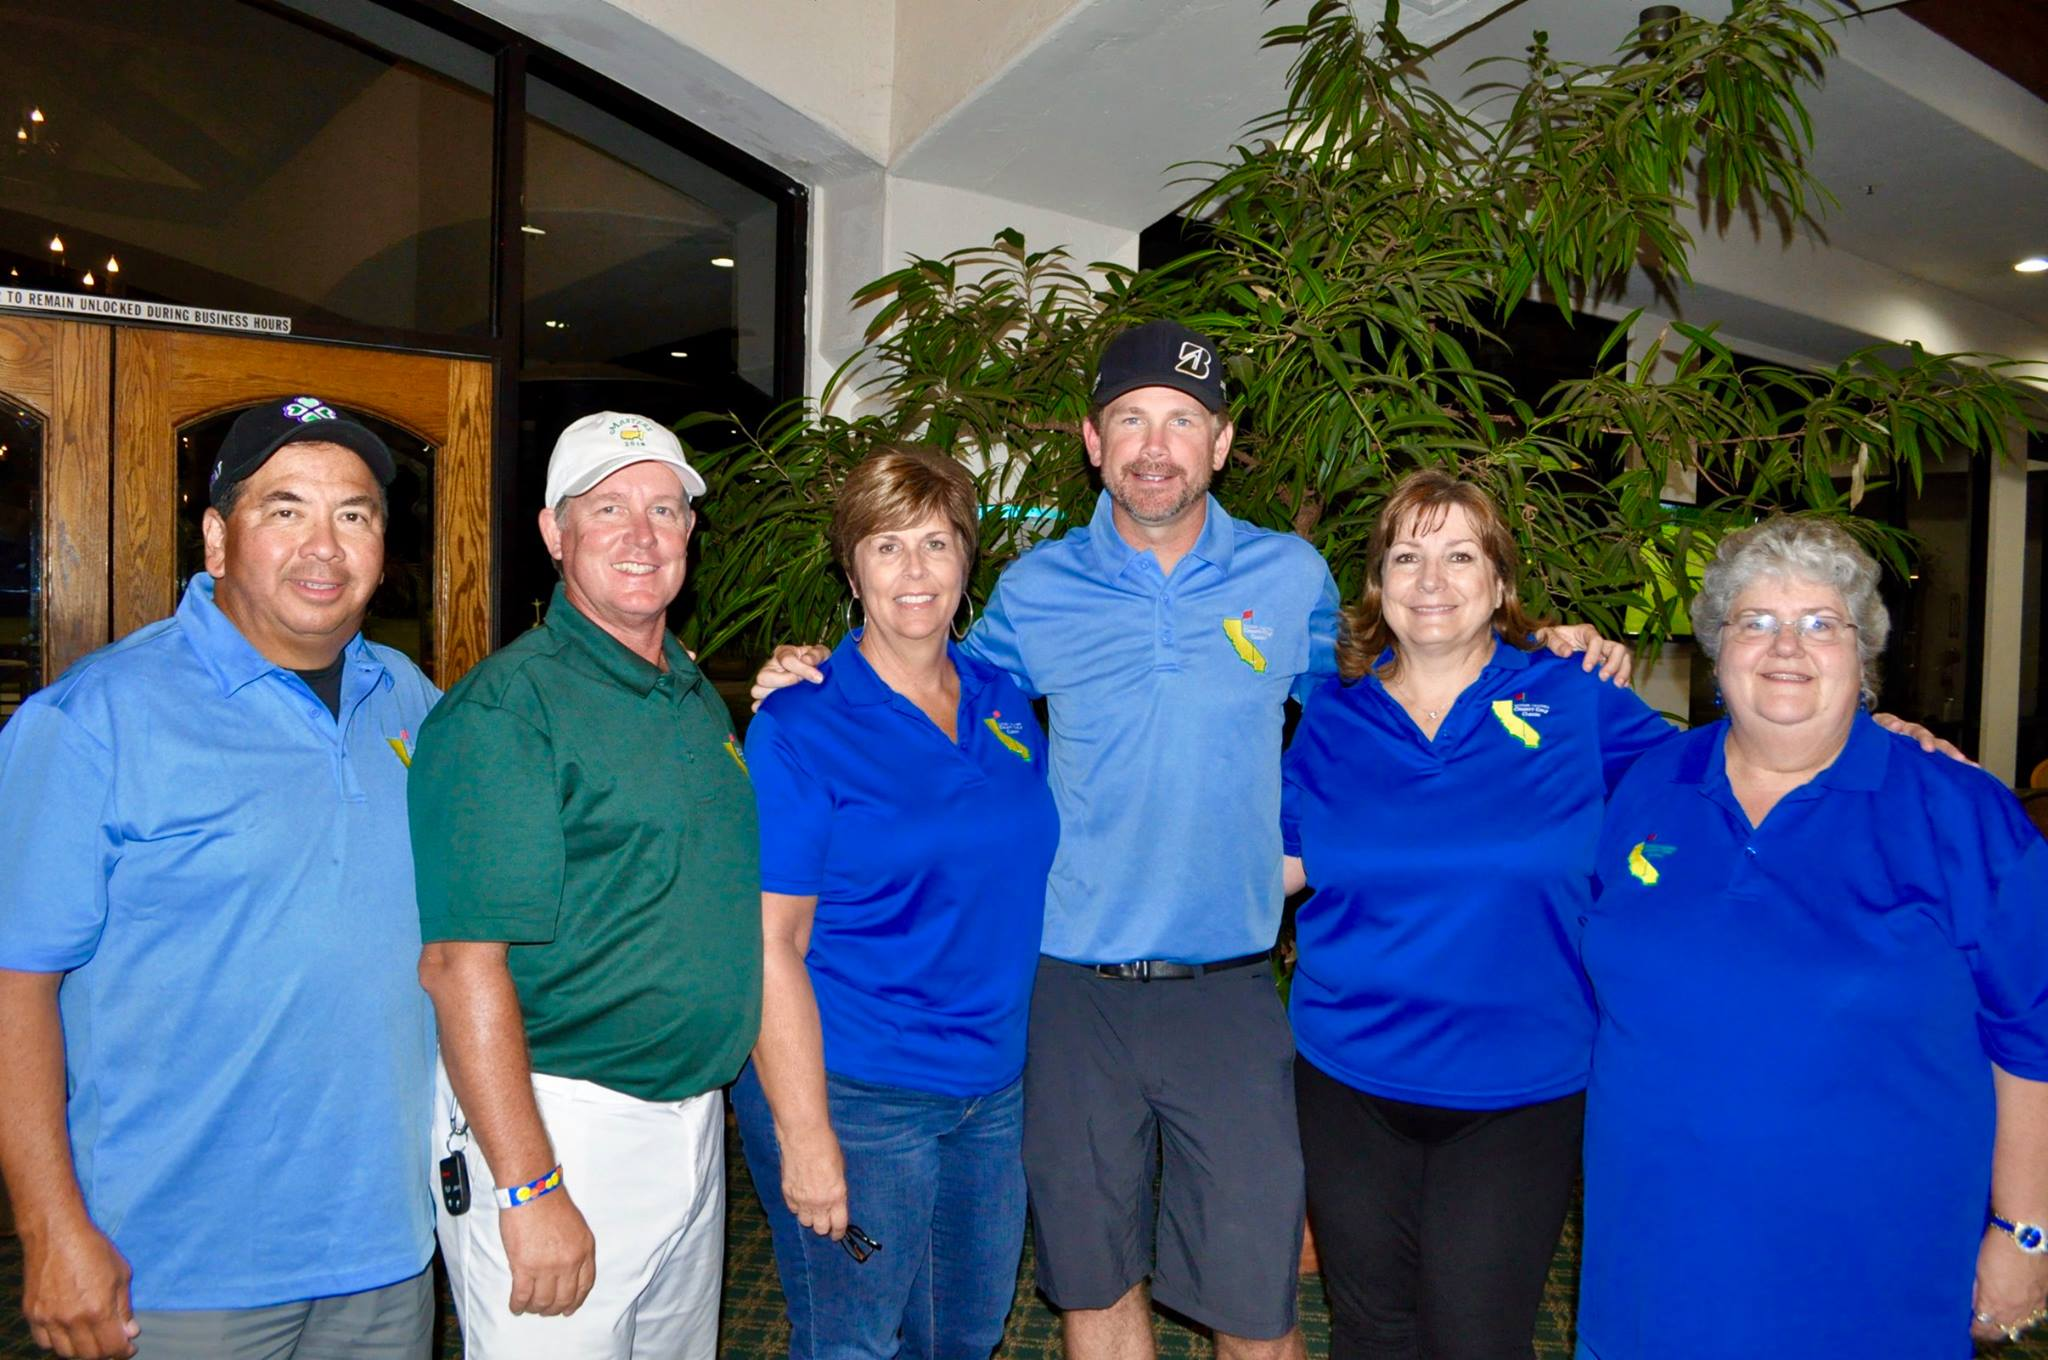 Organizers of the 3rd Annual Southern California Charity Golf Classic at Los Serranos Country Club - Anthony Verches, Ron Capps, Jan Edwards, Zeb Welborn, Lynnette Brown, Karon Mulligan